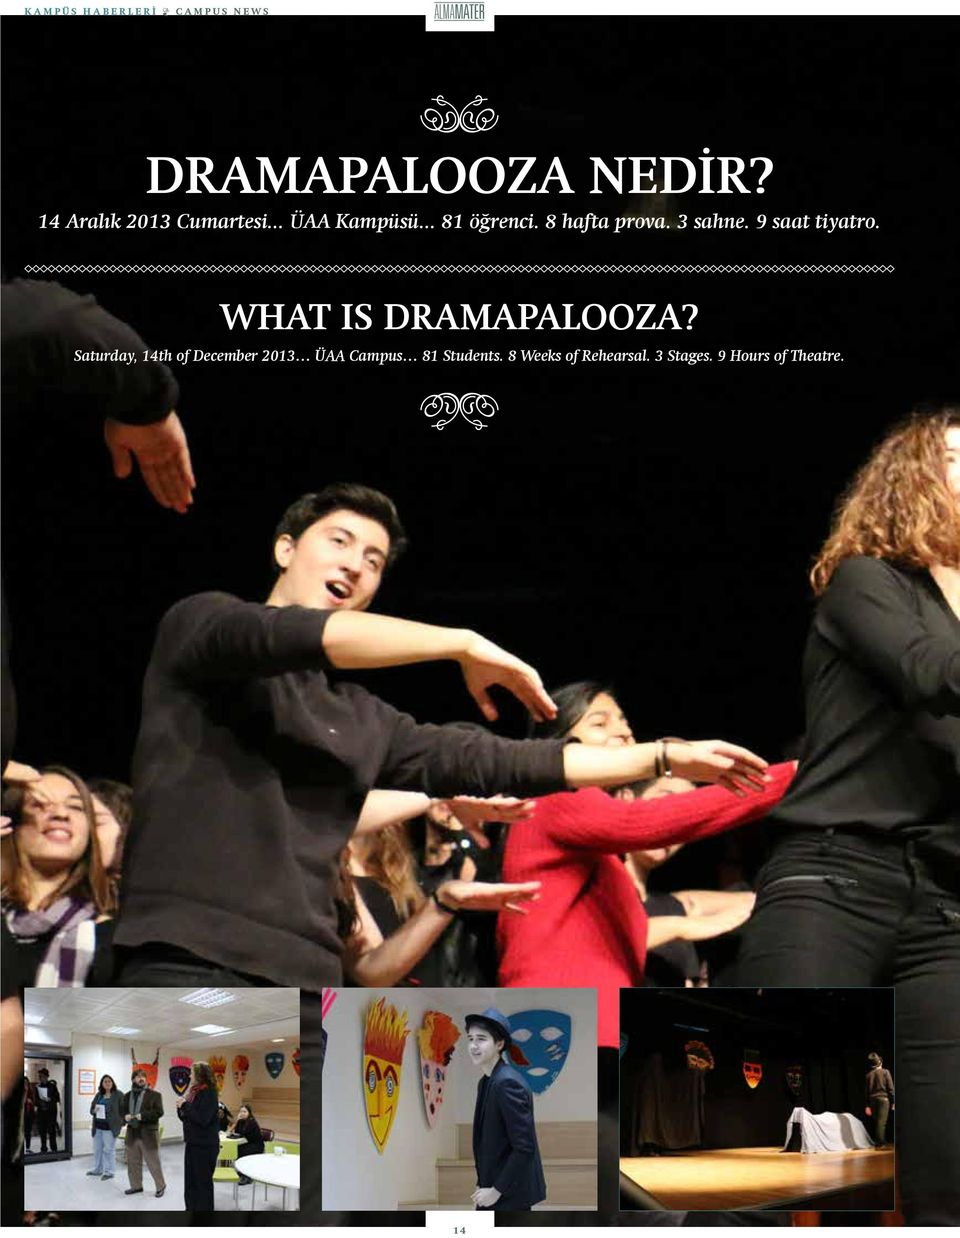 WHAT IS DRAMAPALOOZA?